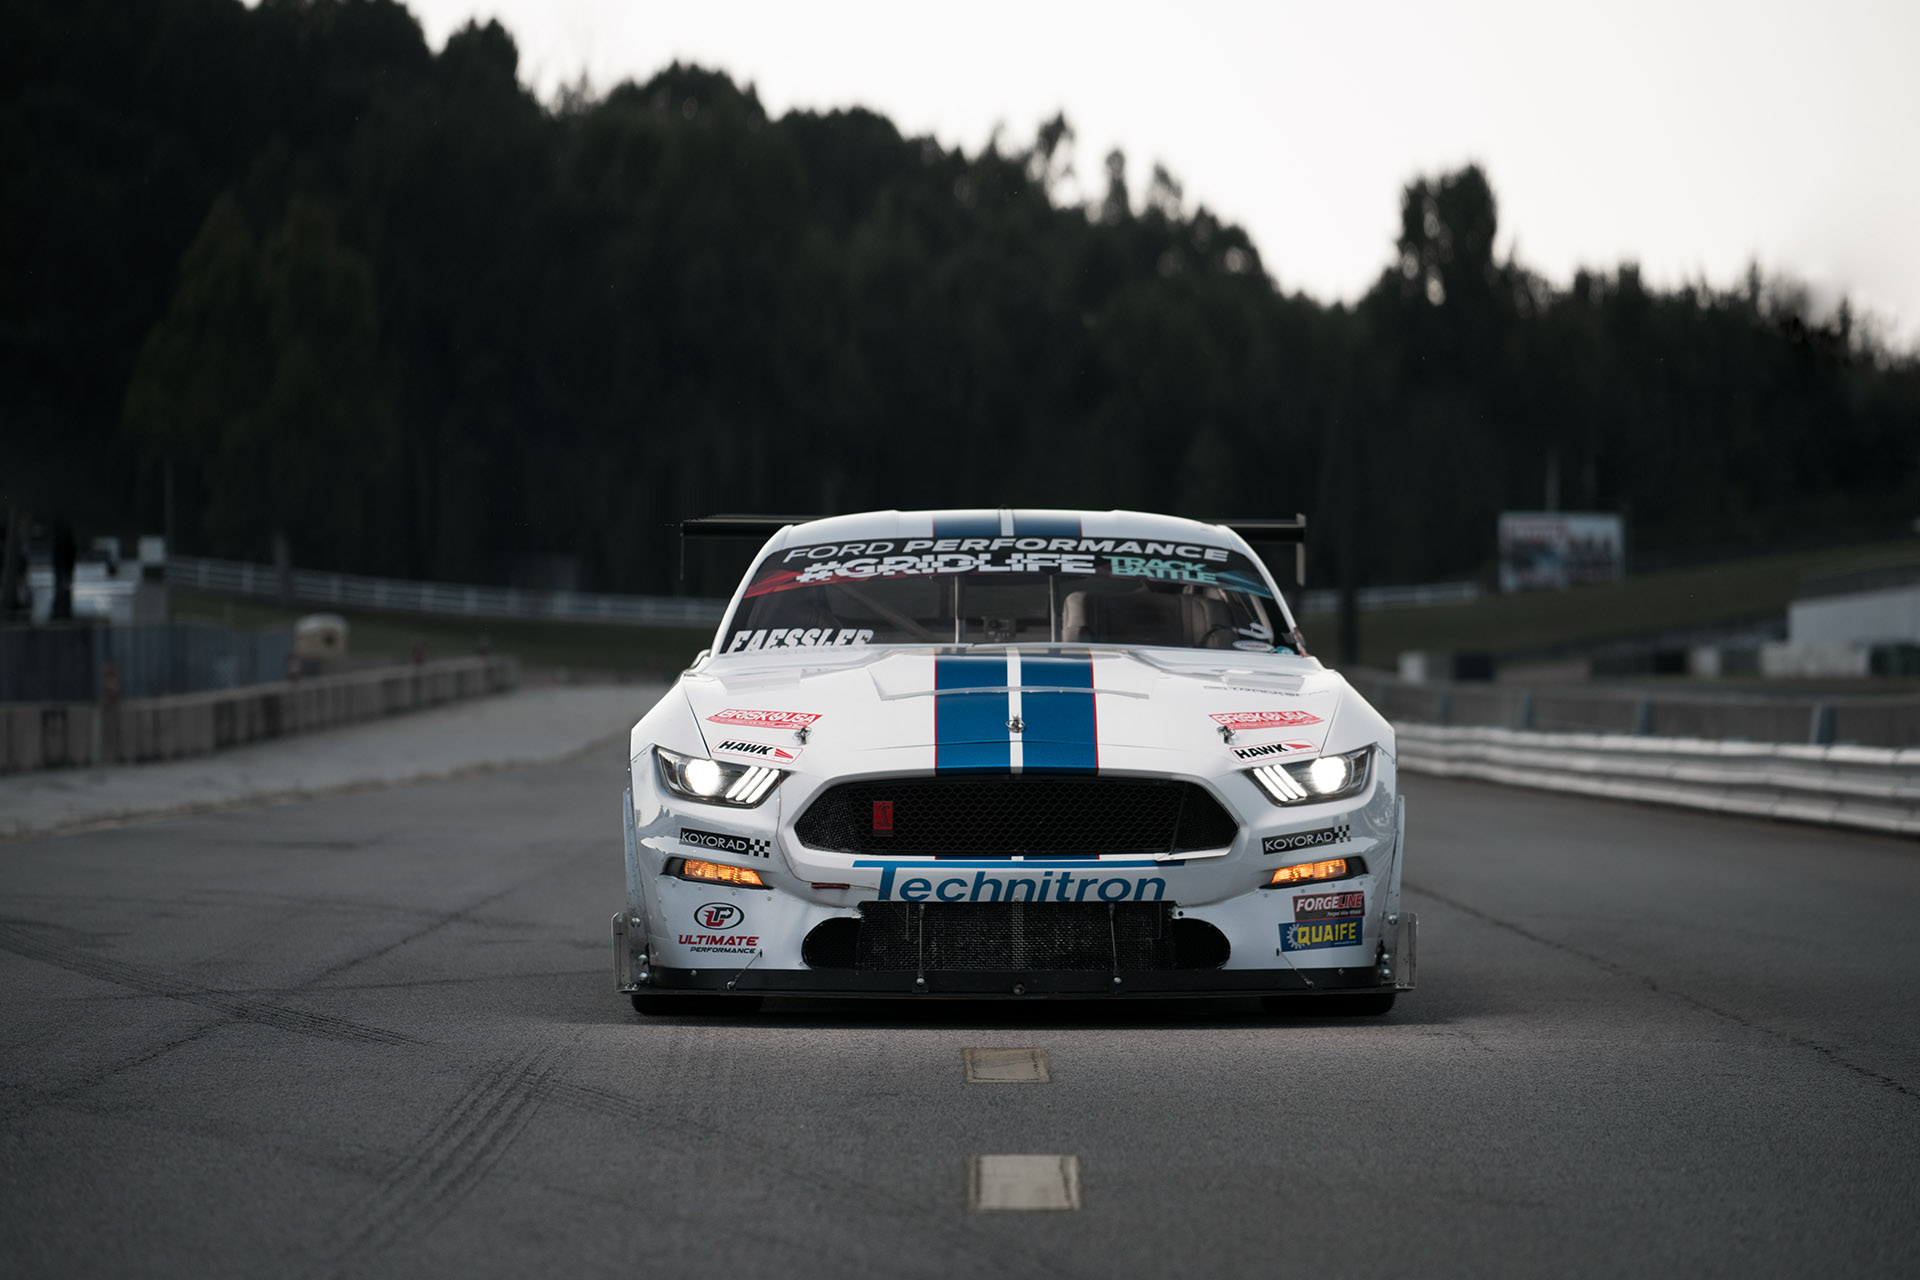 2015 Ford Mustang GT body Paul's Automotive Engineering time trial and time attack race car